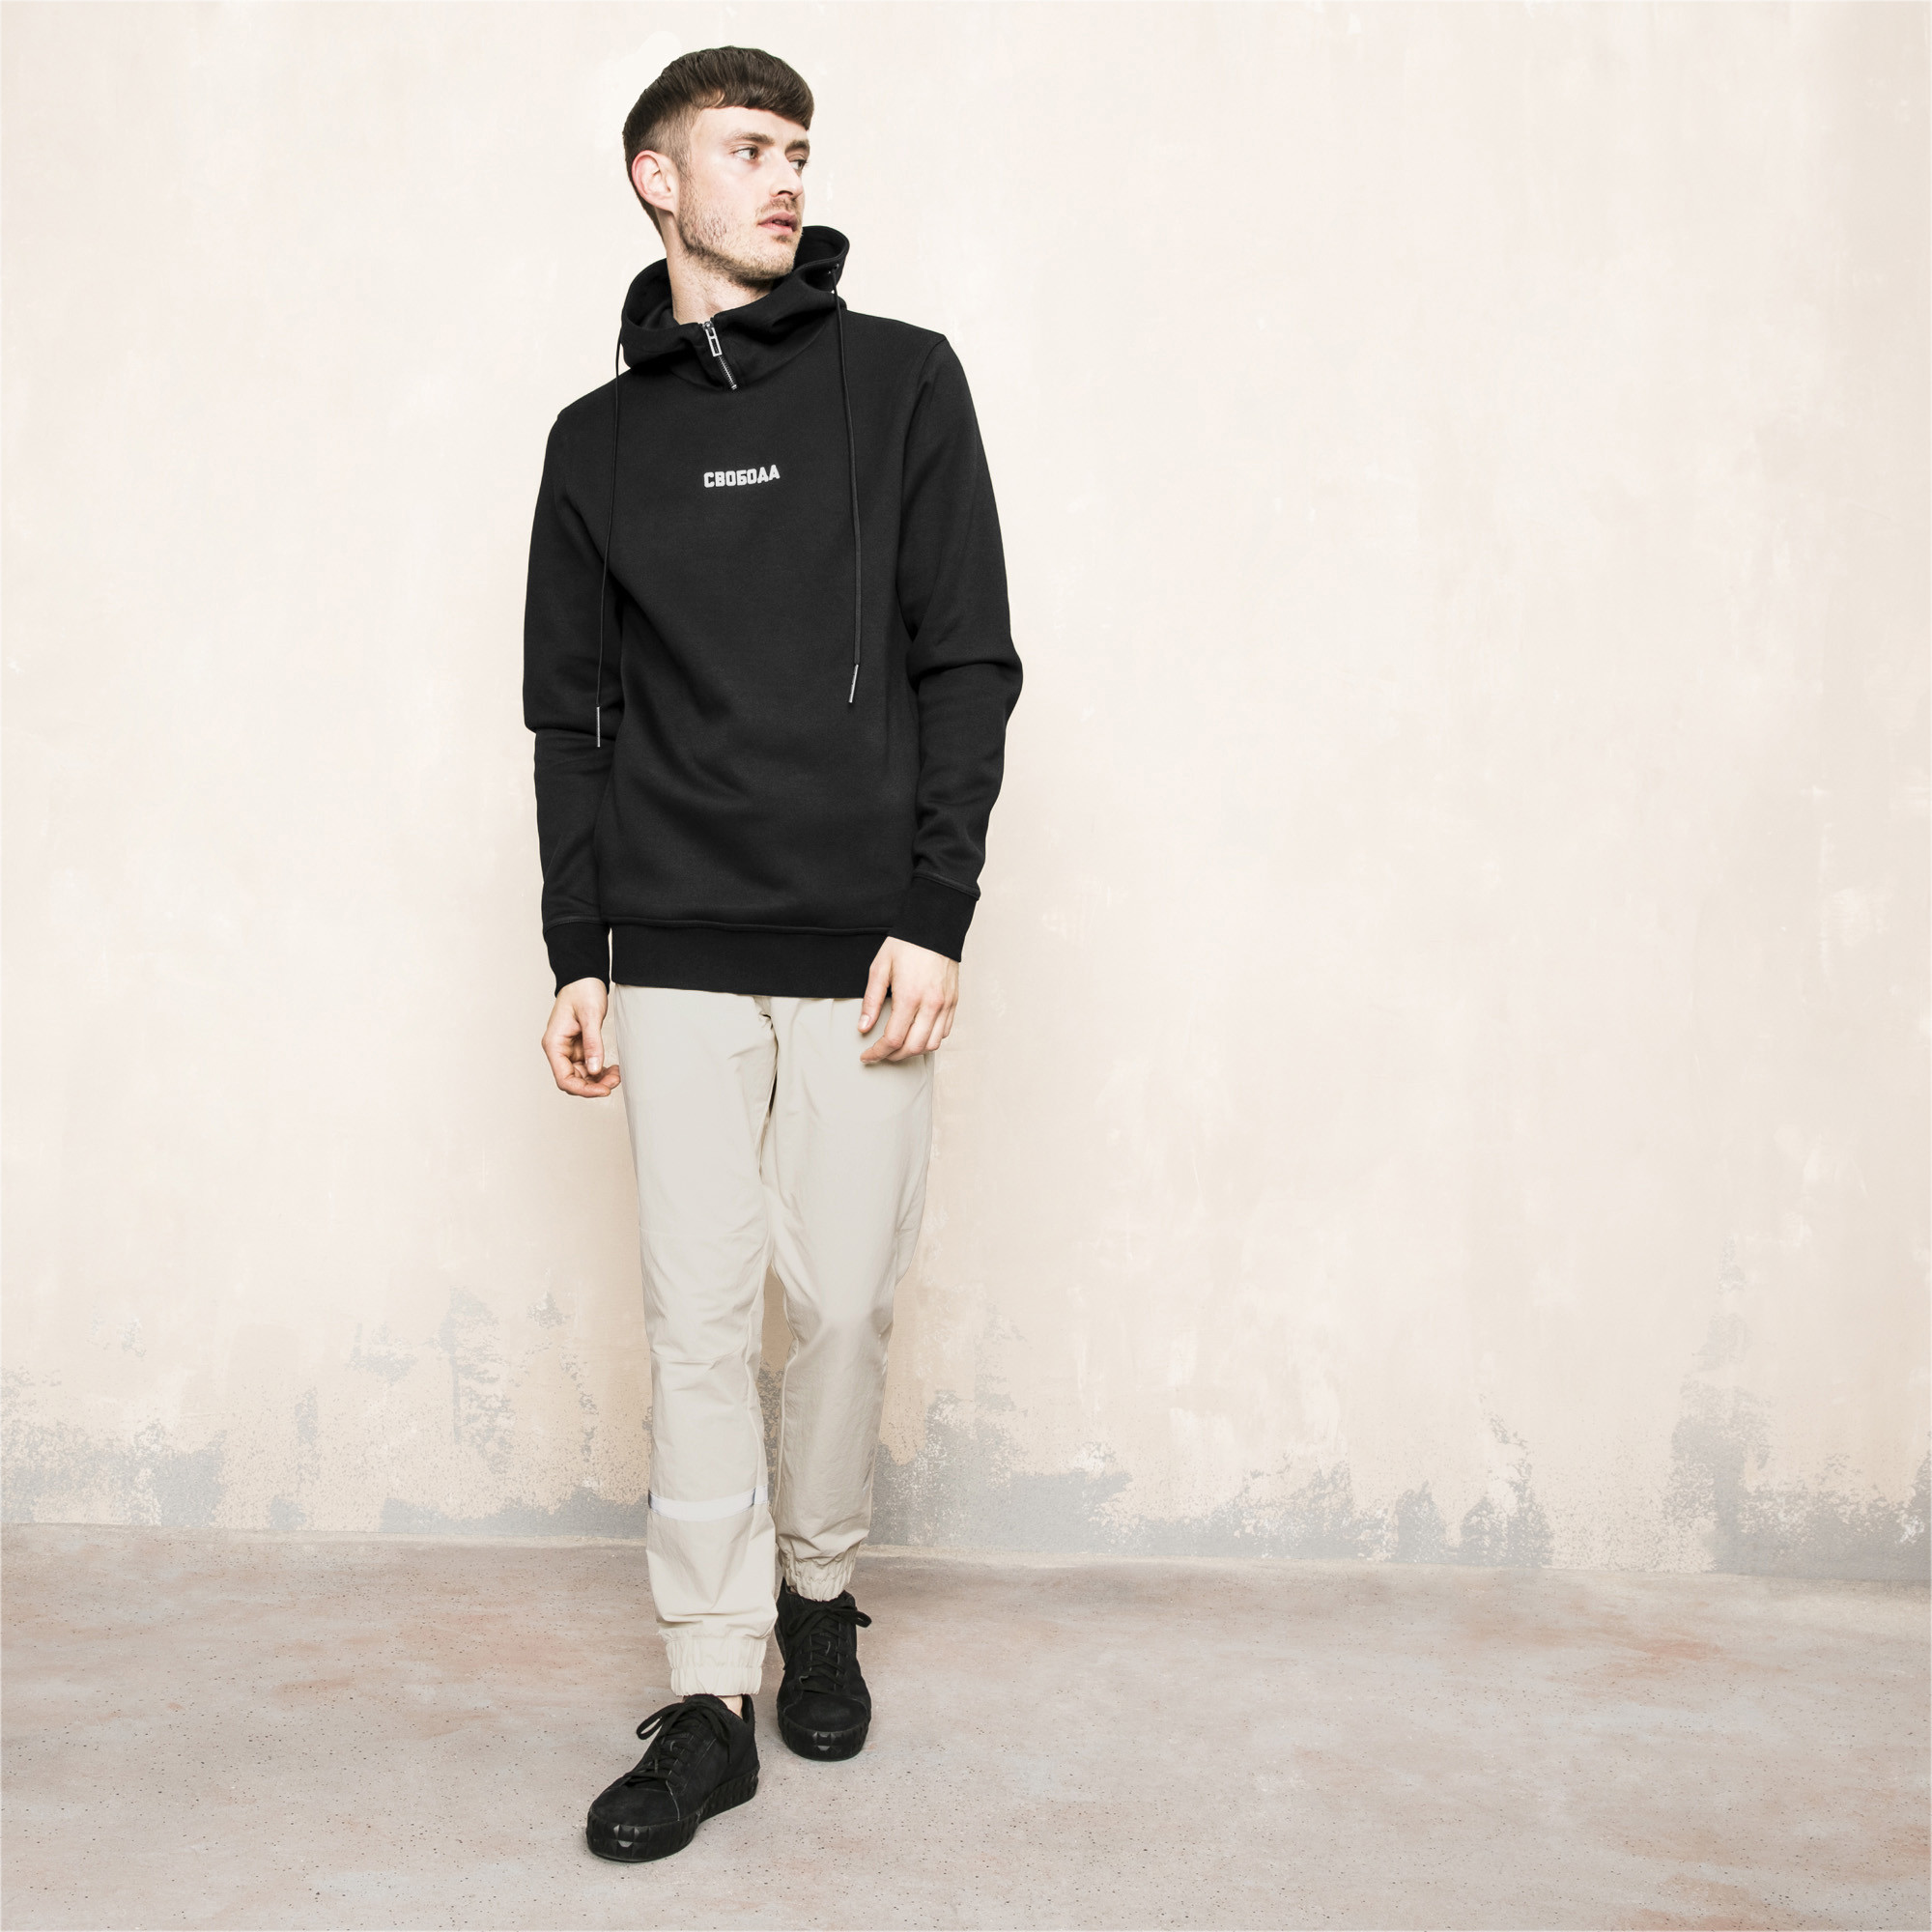 PUMA x OUTLAW MOSCOW Men's Hoodie